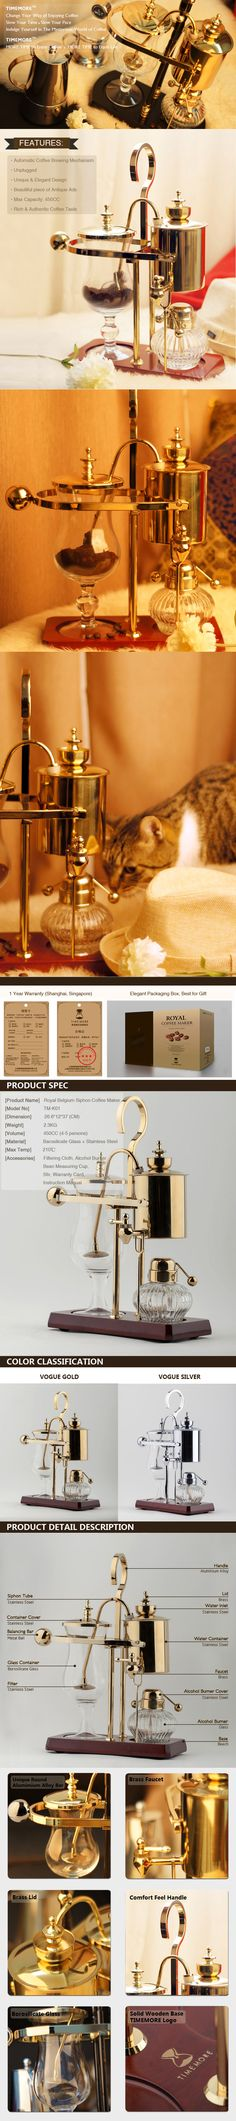 TIMEMORE Premium Quality Royal Belgium Siphon Coffee Maker - Vague Gold and Silver series.. visit: http://www.timemore.com.sg